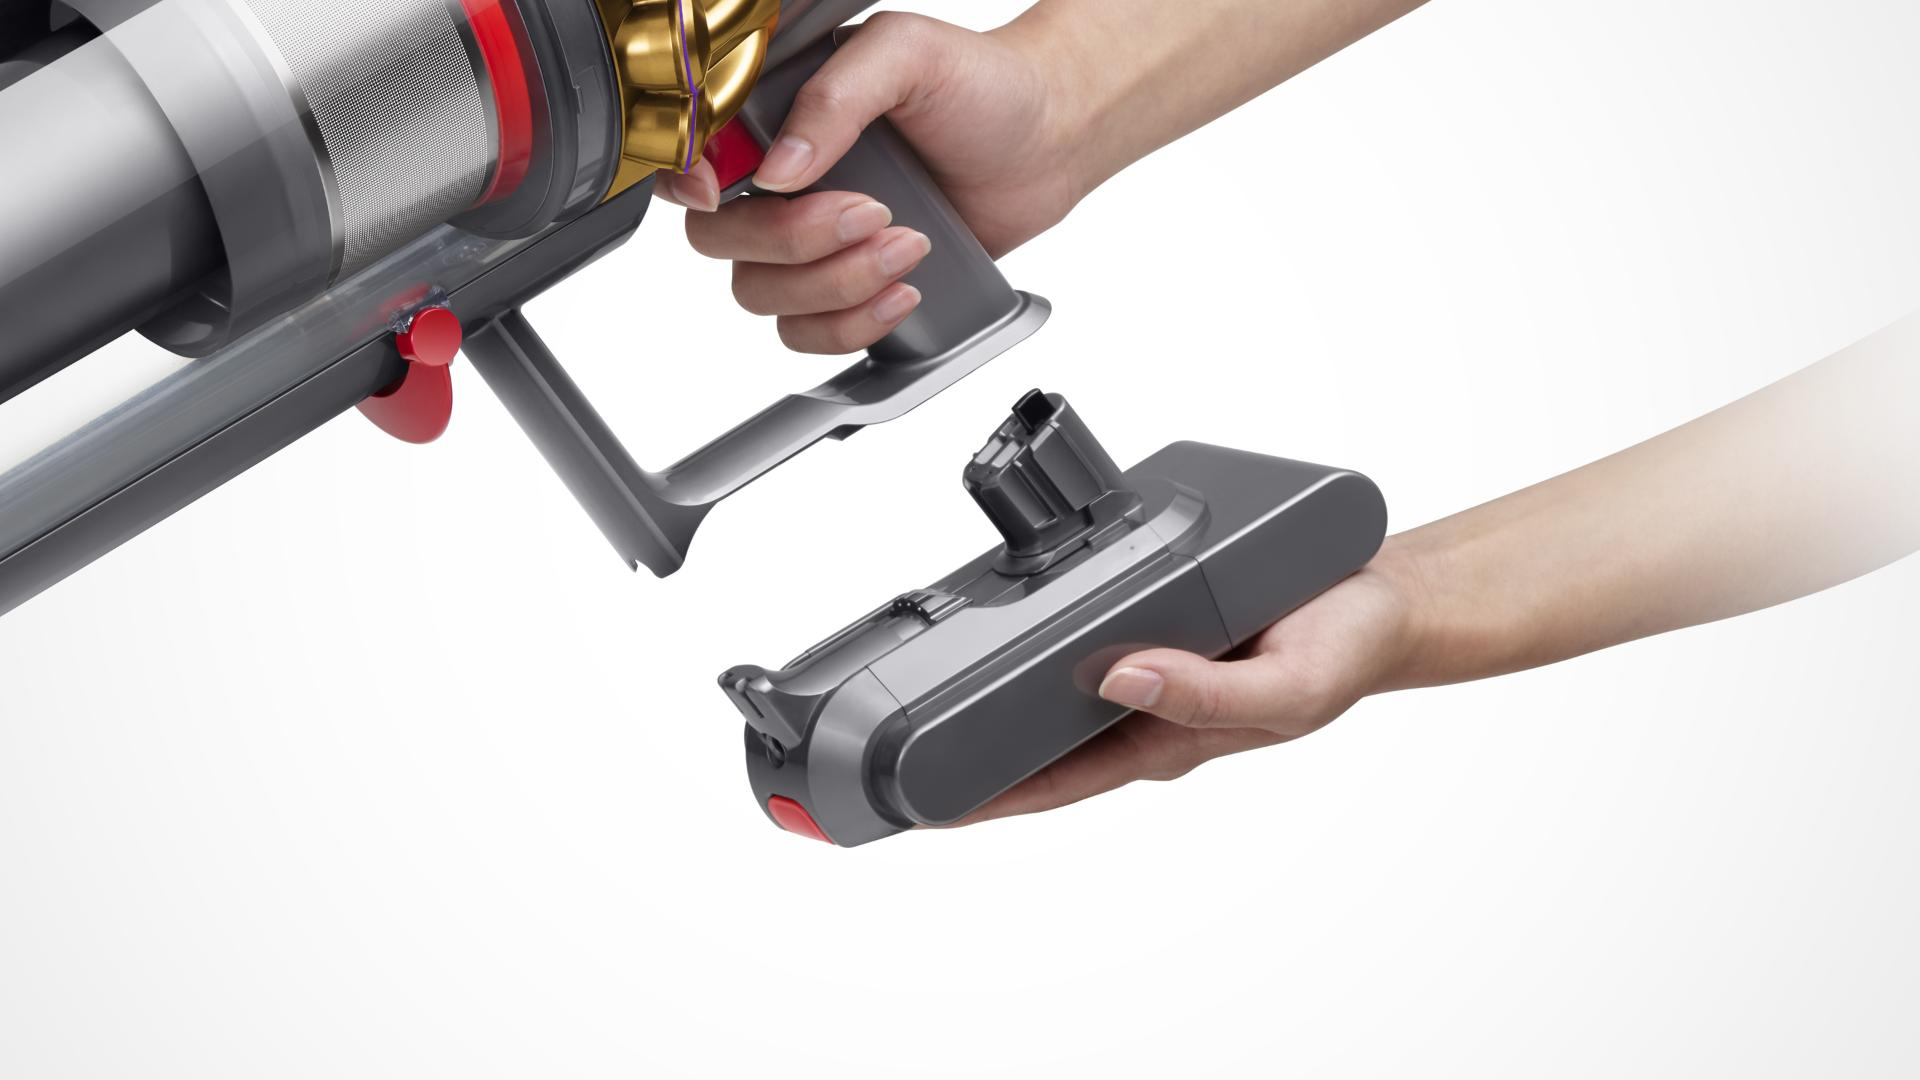 The Dyson V11 Outsize vacuum click-in battery